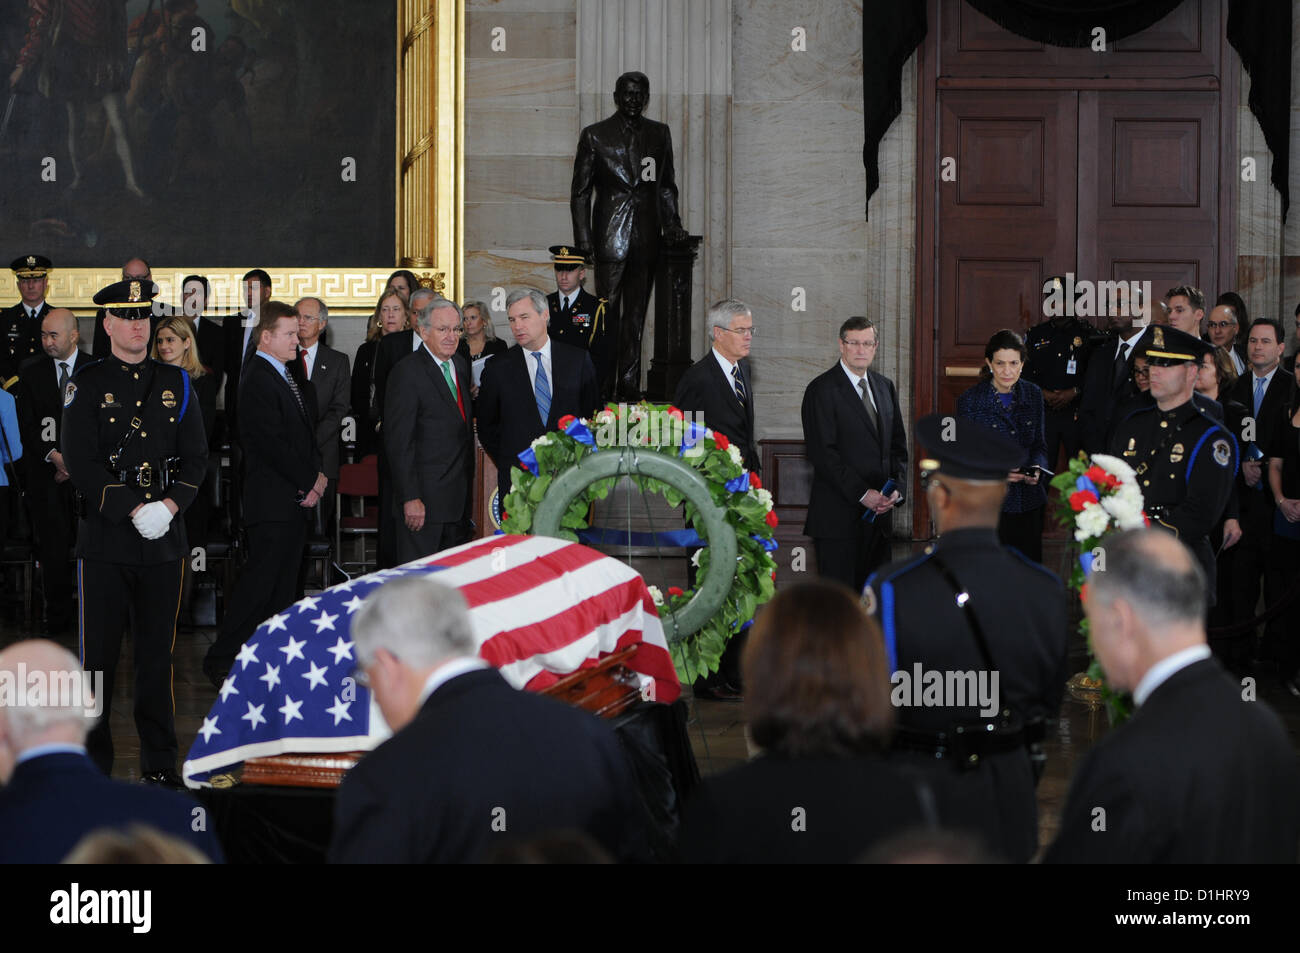 Members of the US Senate pay their respects to Senator Daniel Inouye lying in state in the Rotunda of the US Capitol - Stock Image